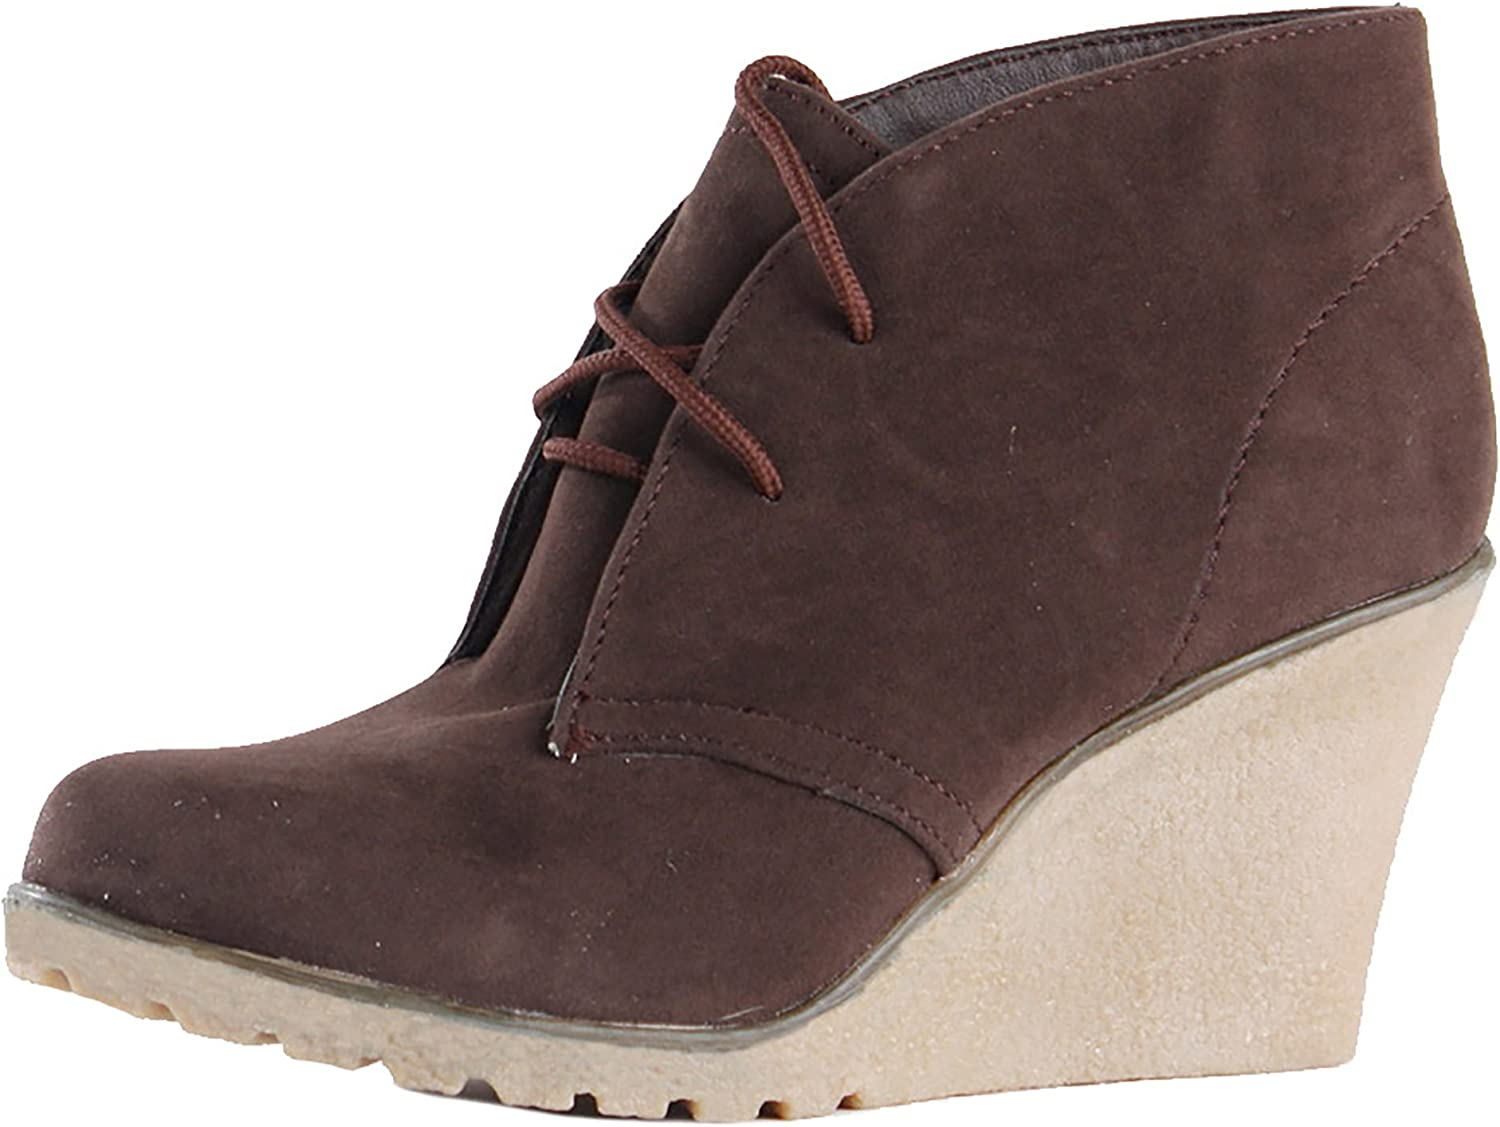 Suede Wedges High Platform Ankle Boots